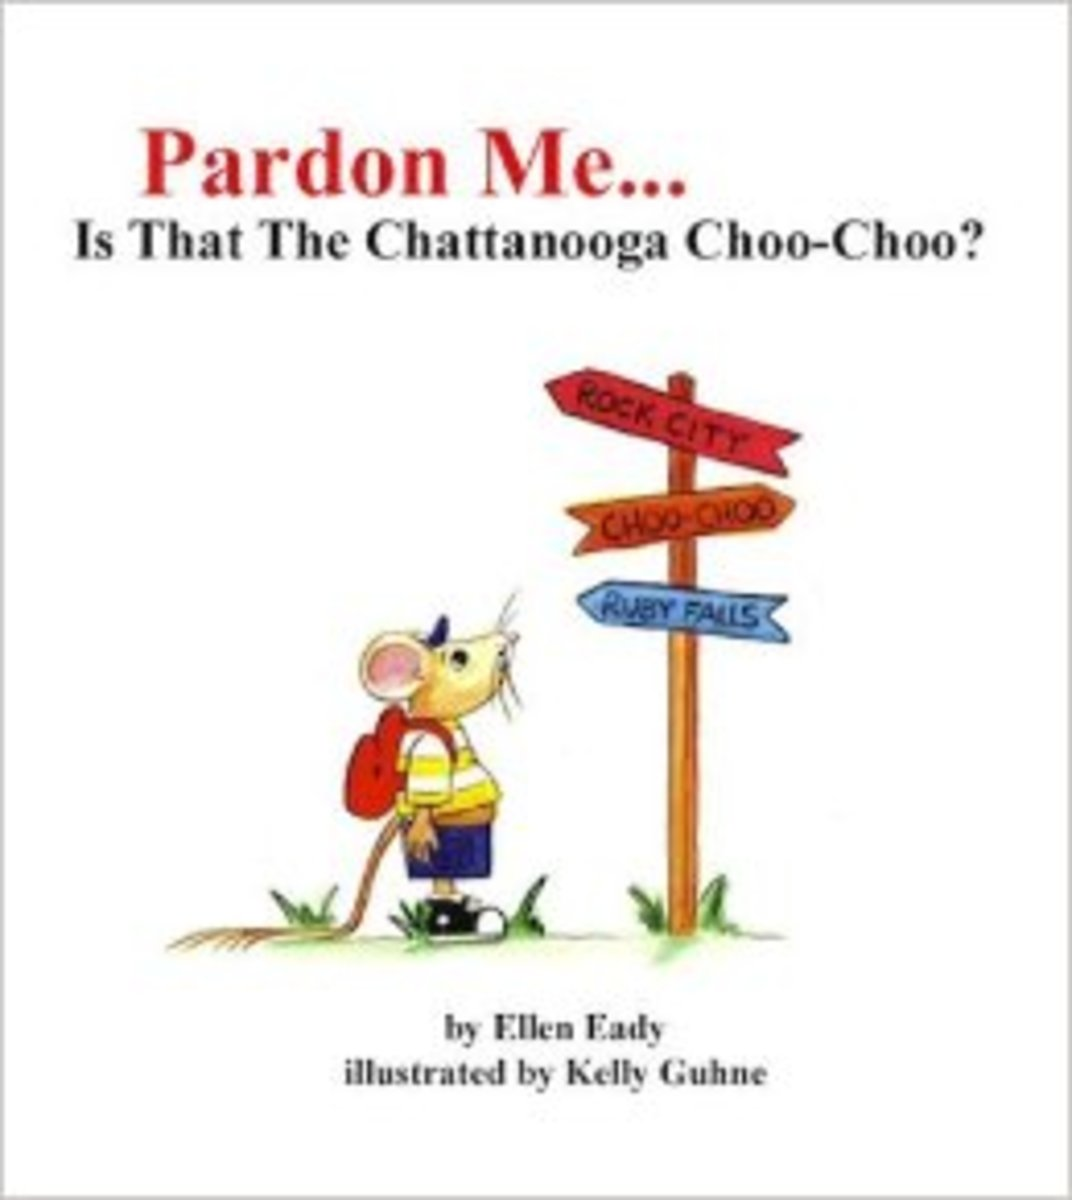 Pardon Me is that the Chattanooga Choo-Choo? by Ellen Eady